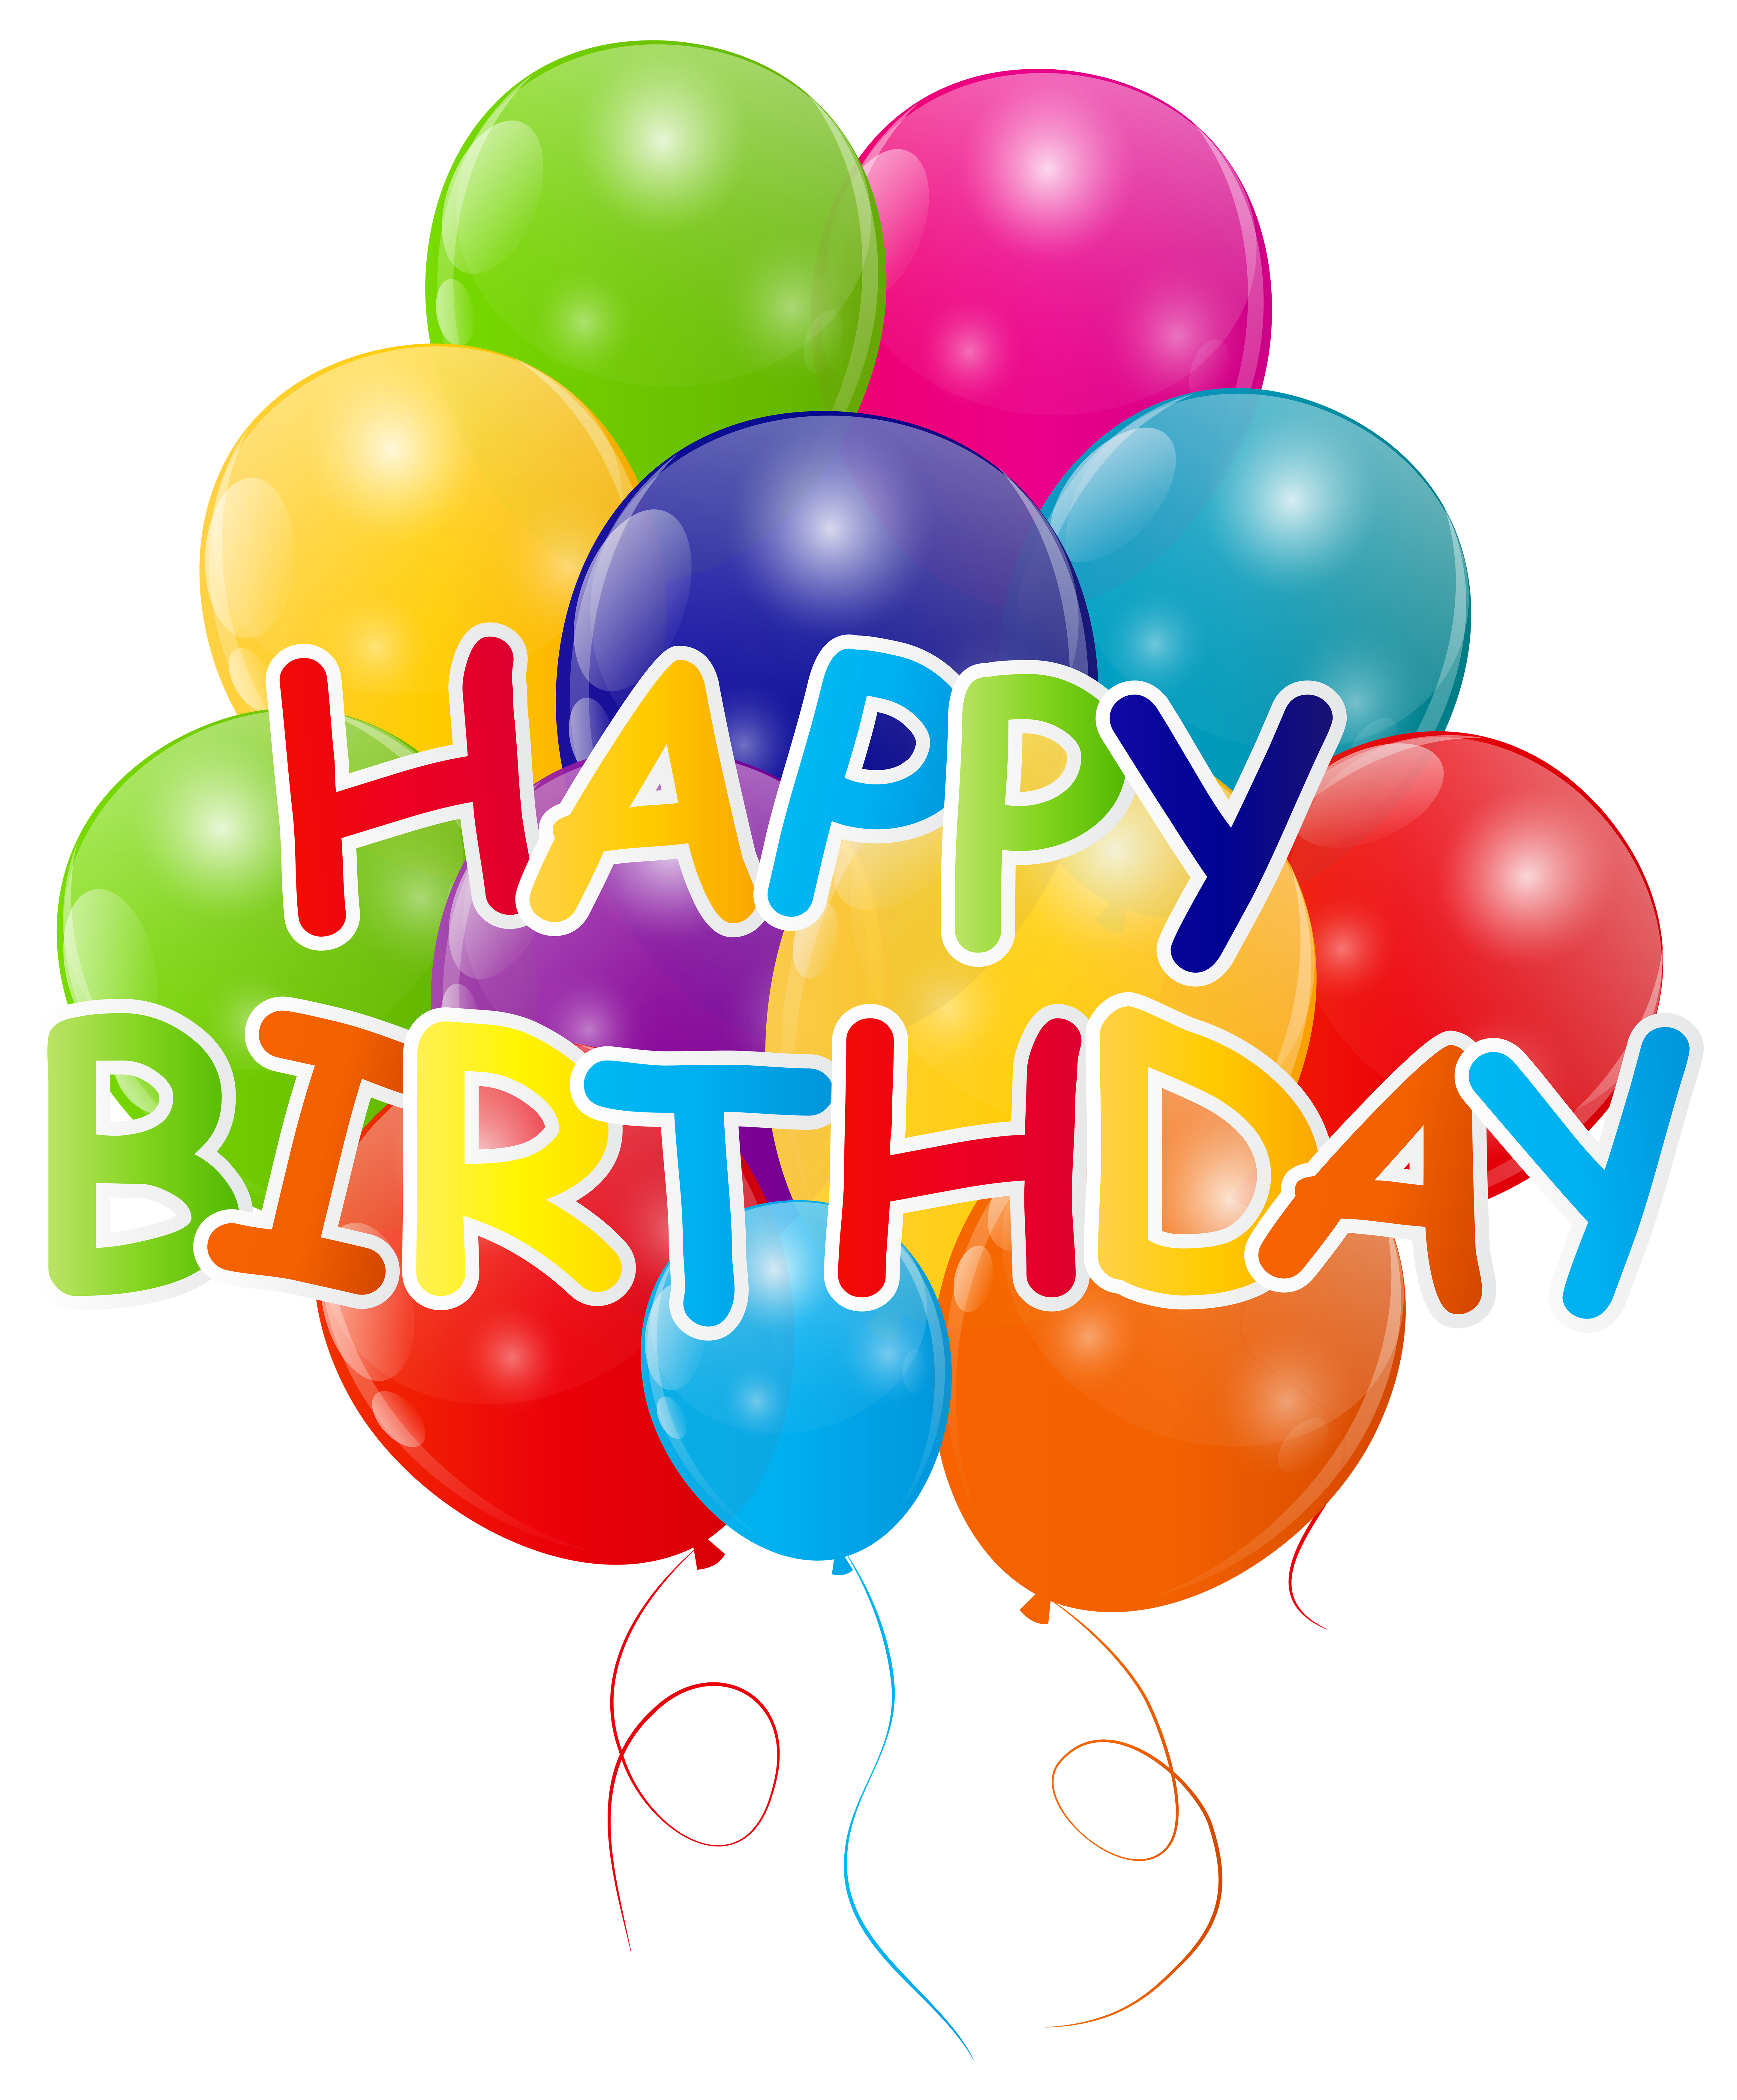 9th birthday balloons dance clipart clipart images gallery.